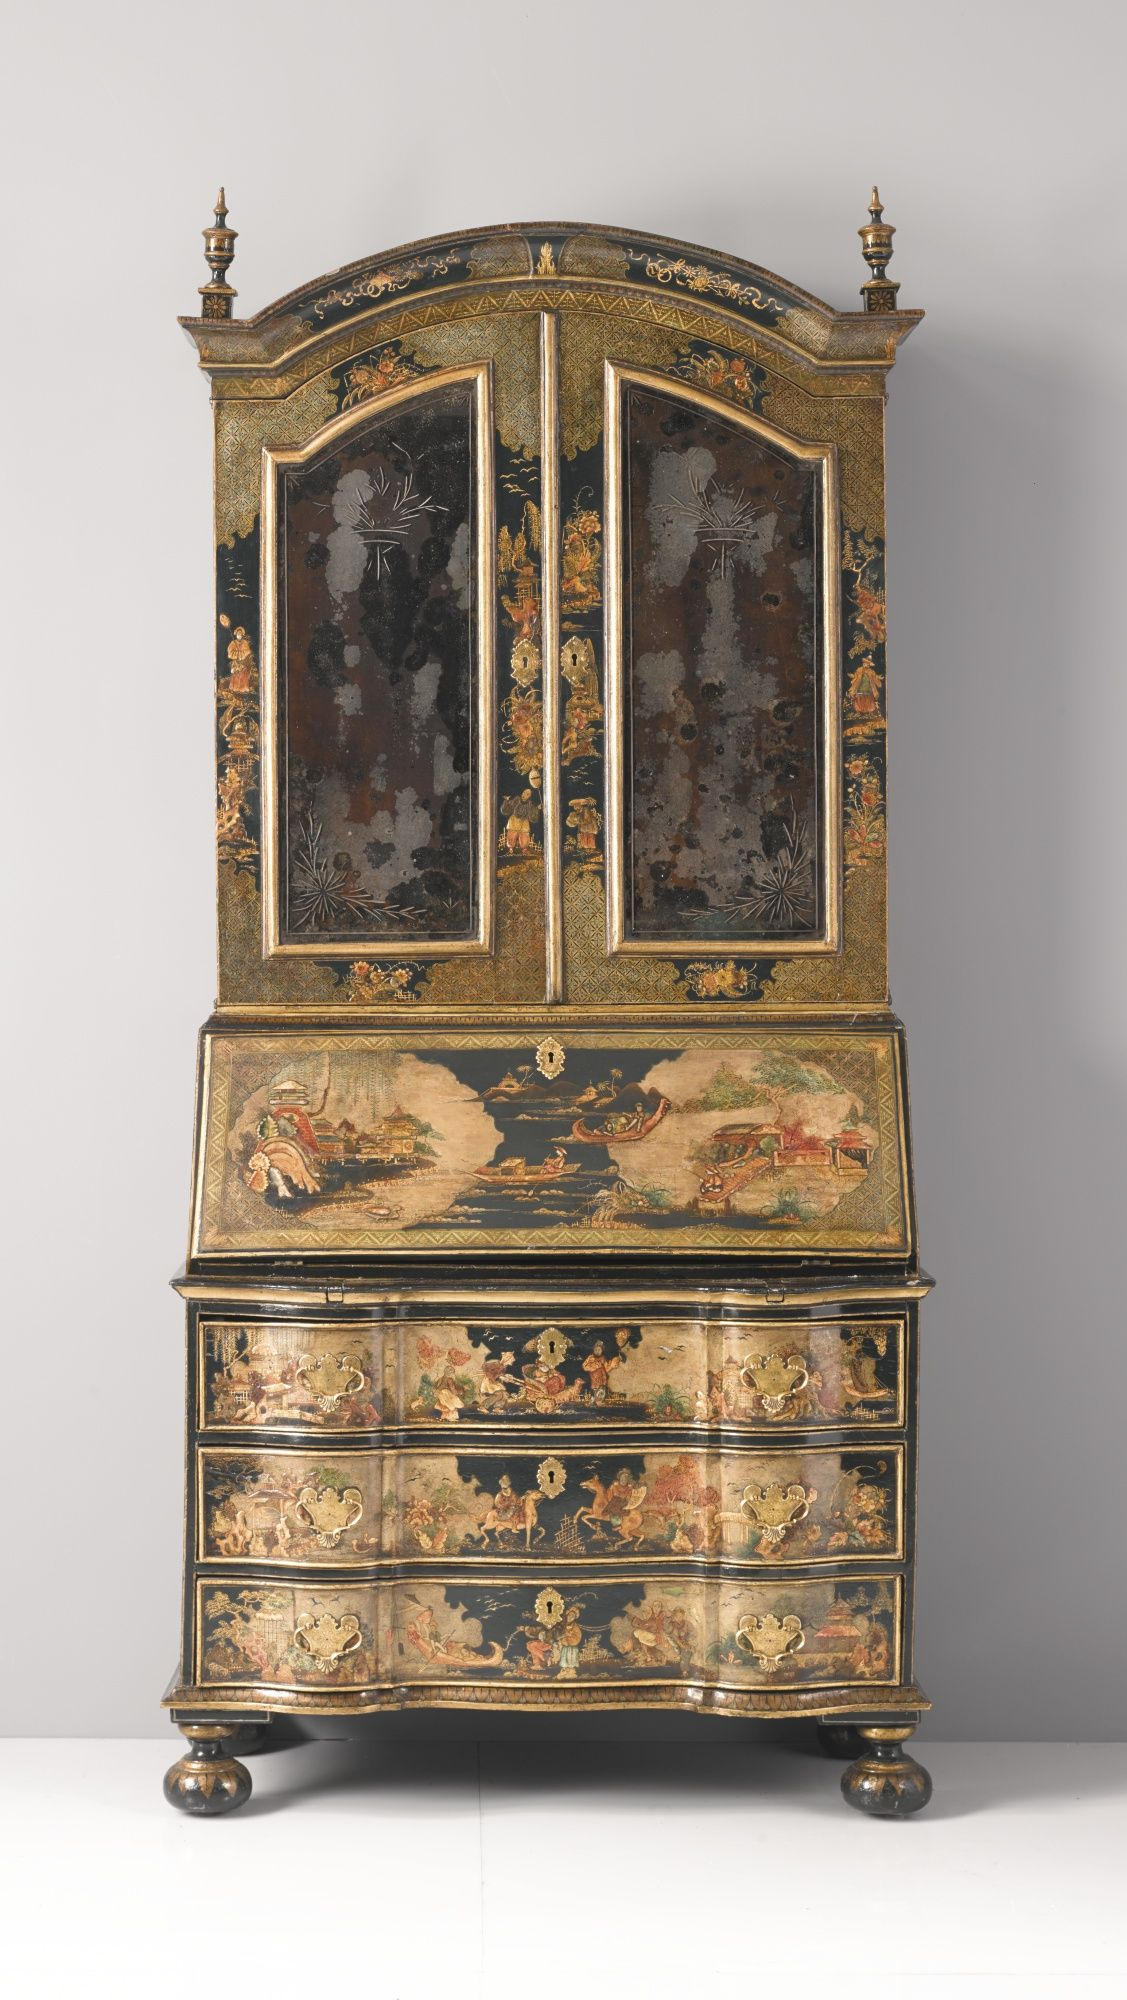 A German Baroque Parcel Gilt And Polychrome Japanned Bureau